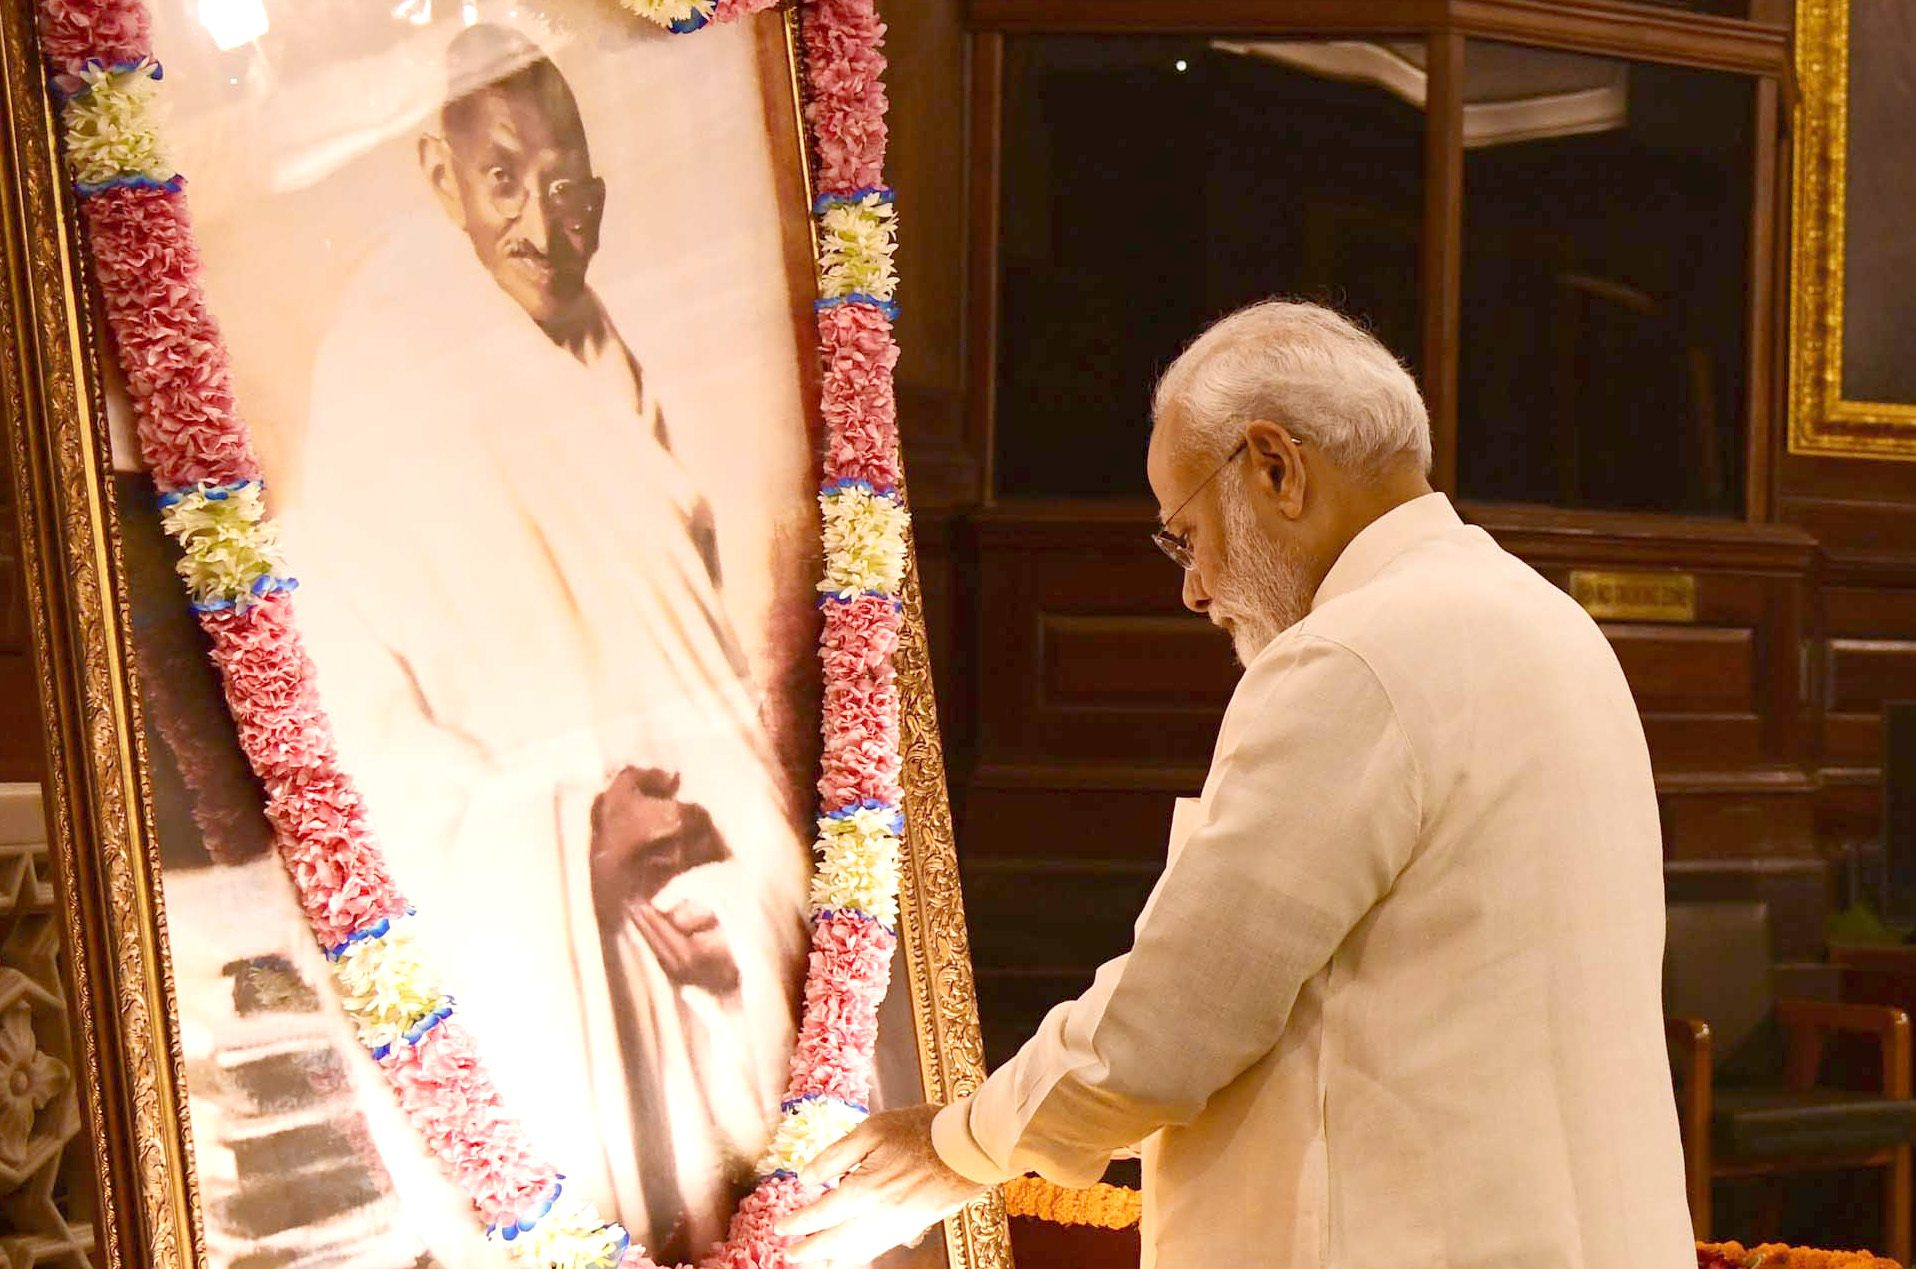 PM pays tributes to Mahatma Gandhi and Lal Bahadur Shastri on their birth anniversary